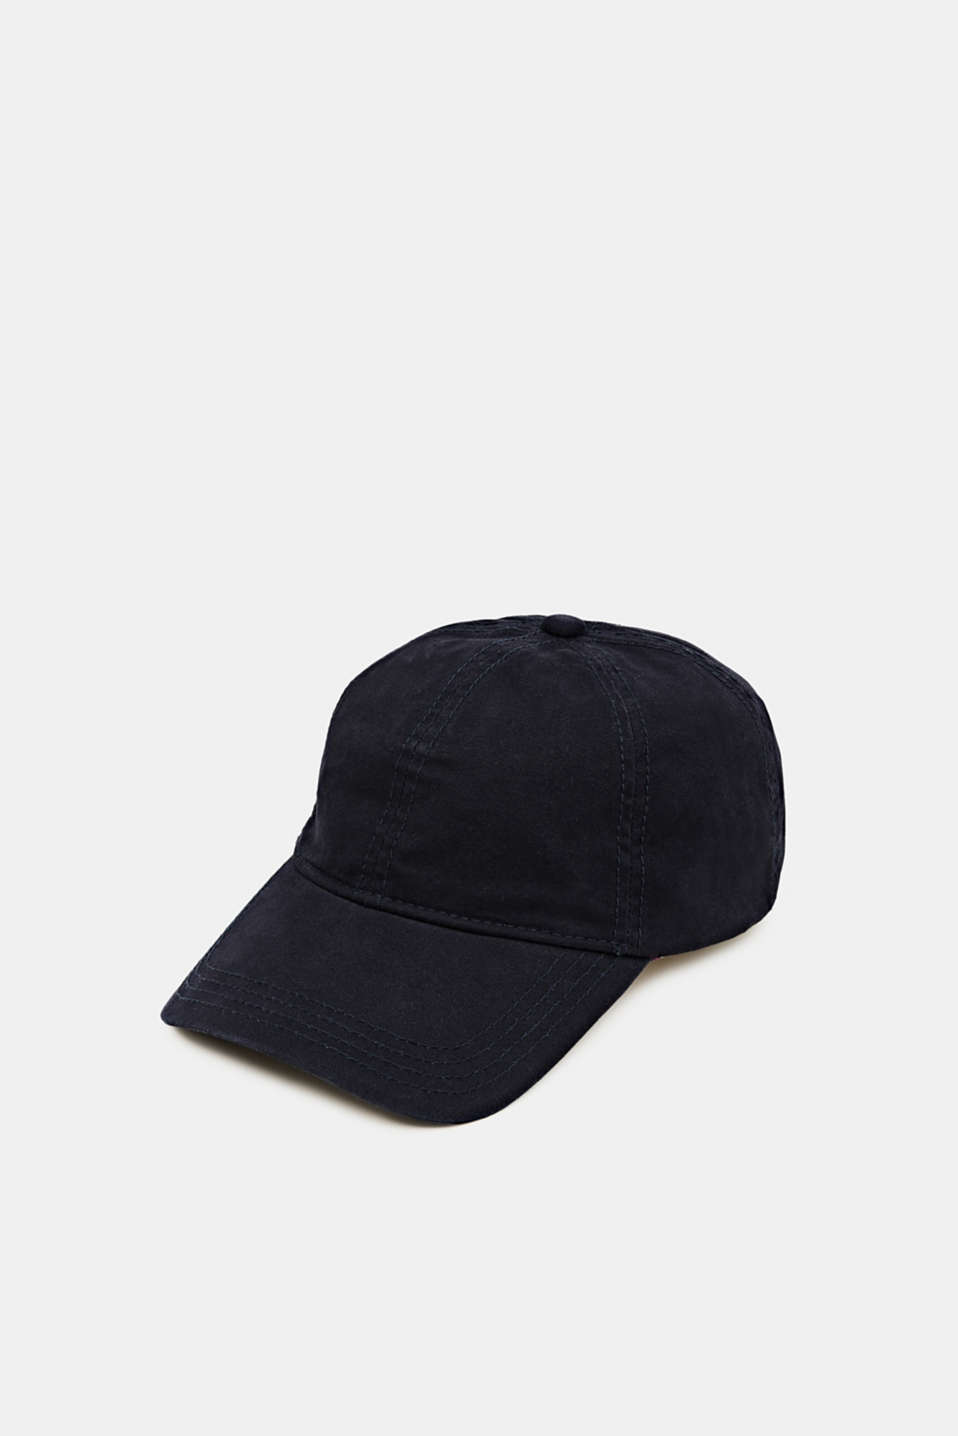 Cap in a basic design, 100% cotton, NAVY, detail image number 0